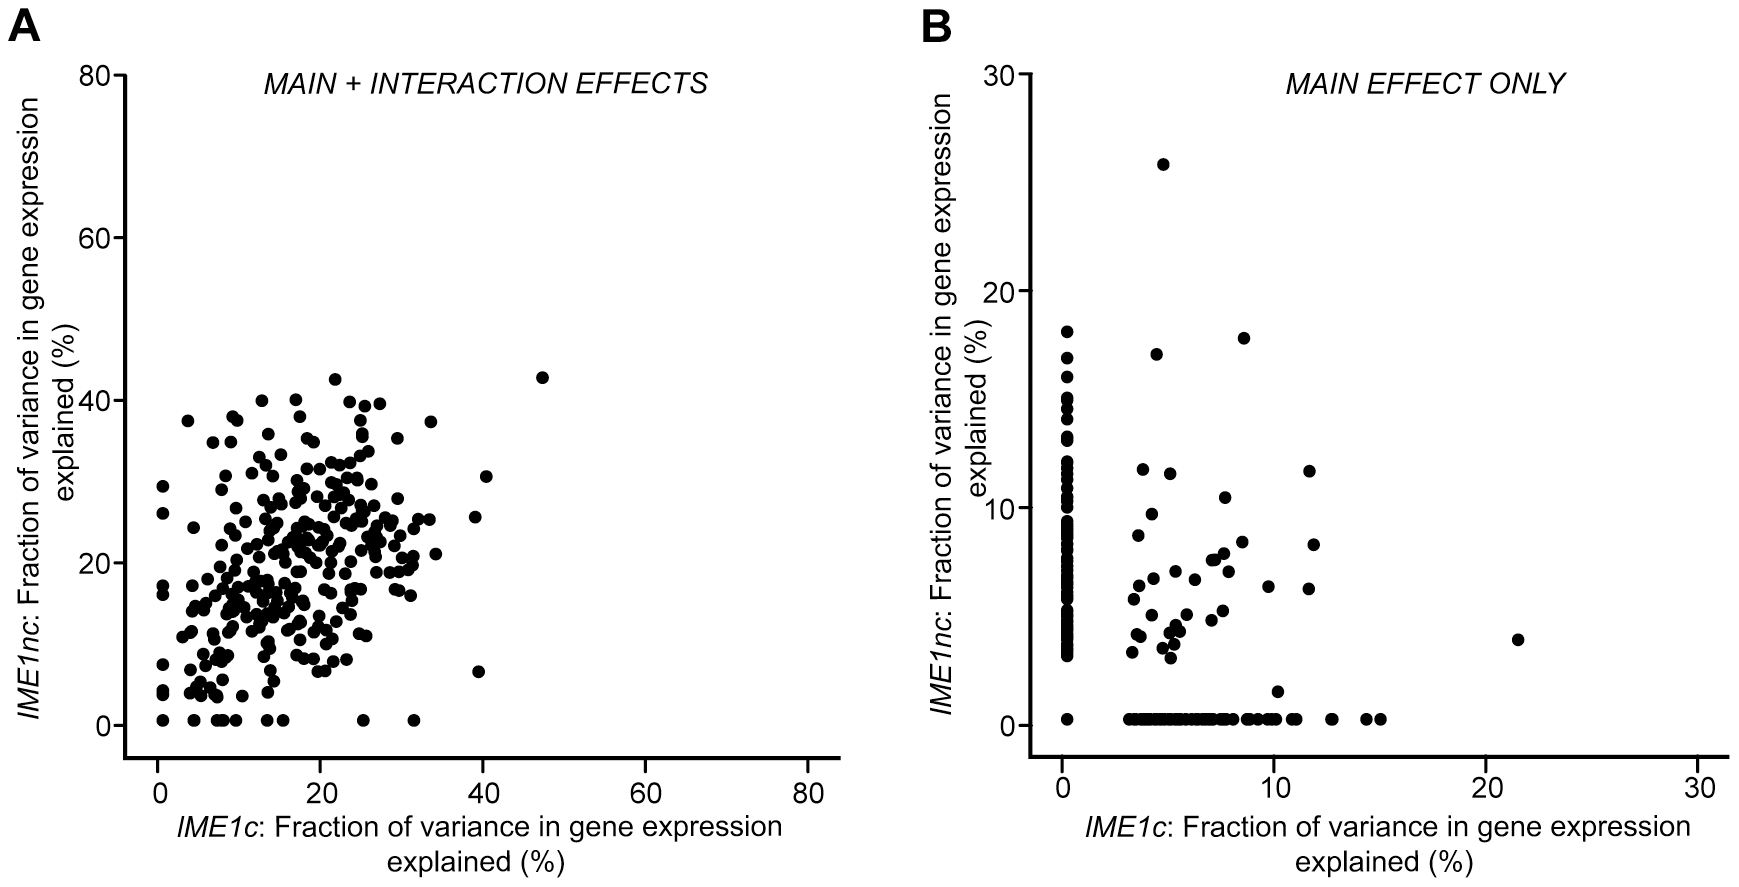 Scatter plot comparing the total fraction of variance explained by the <i>Ime1nc</i> and <i>Ime1c</i> alleles.